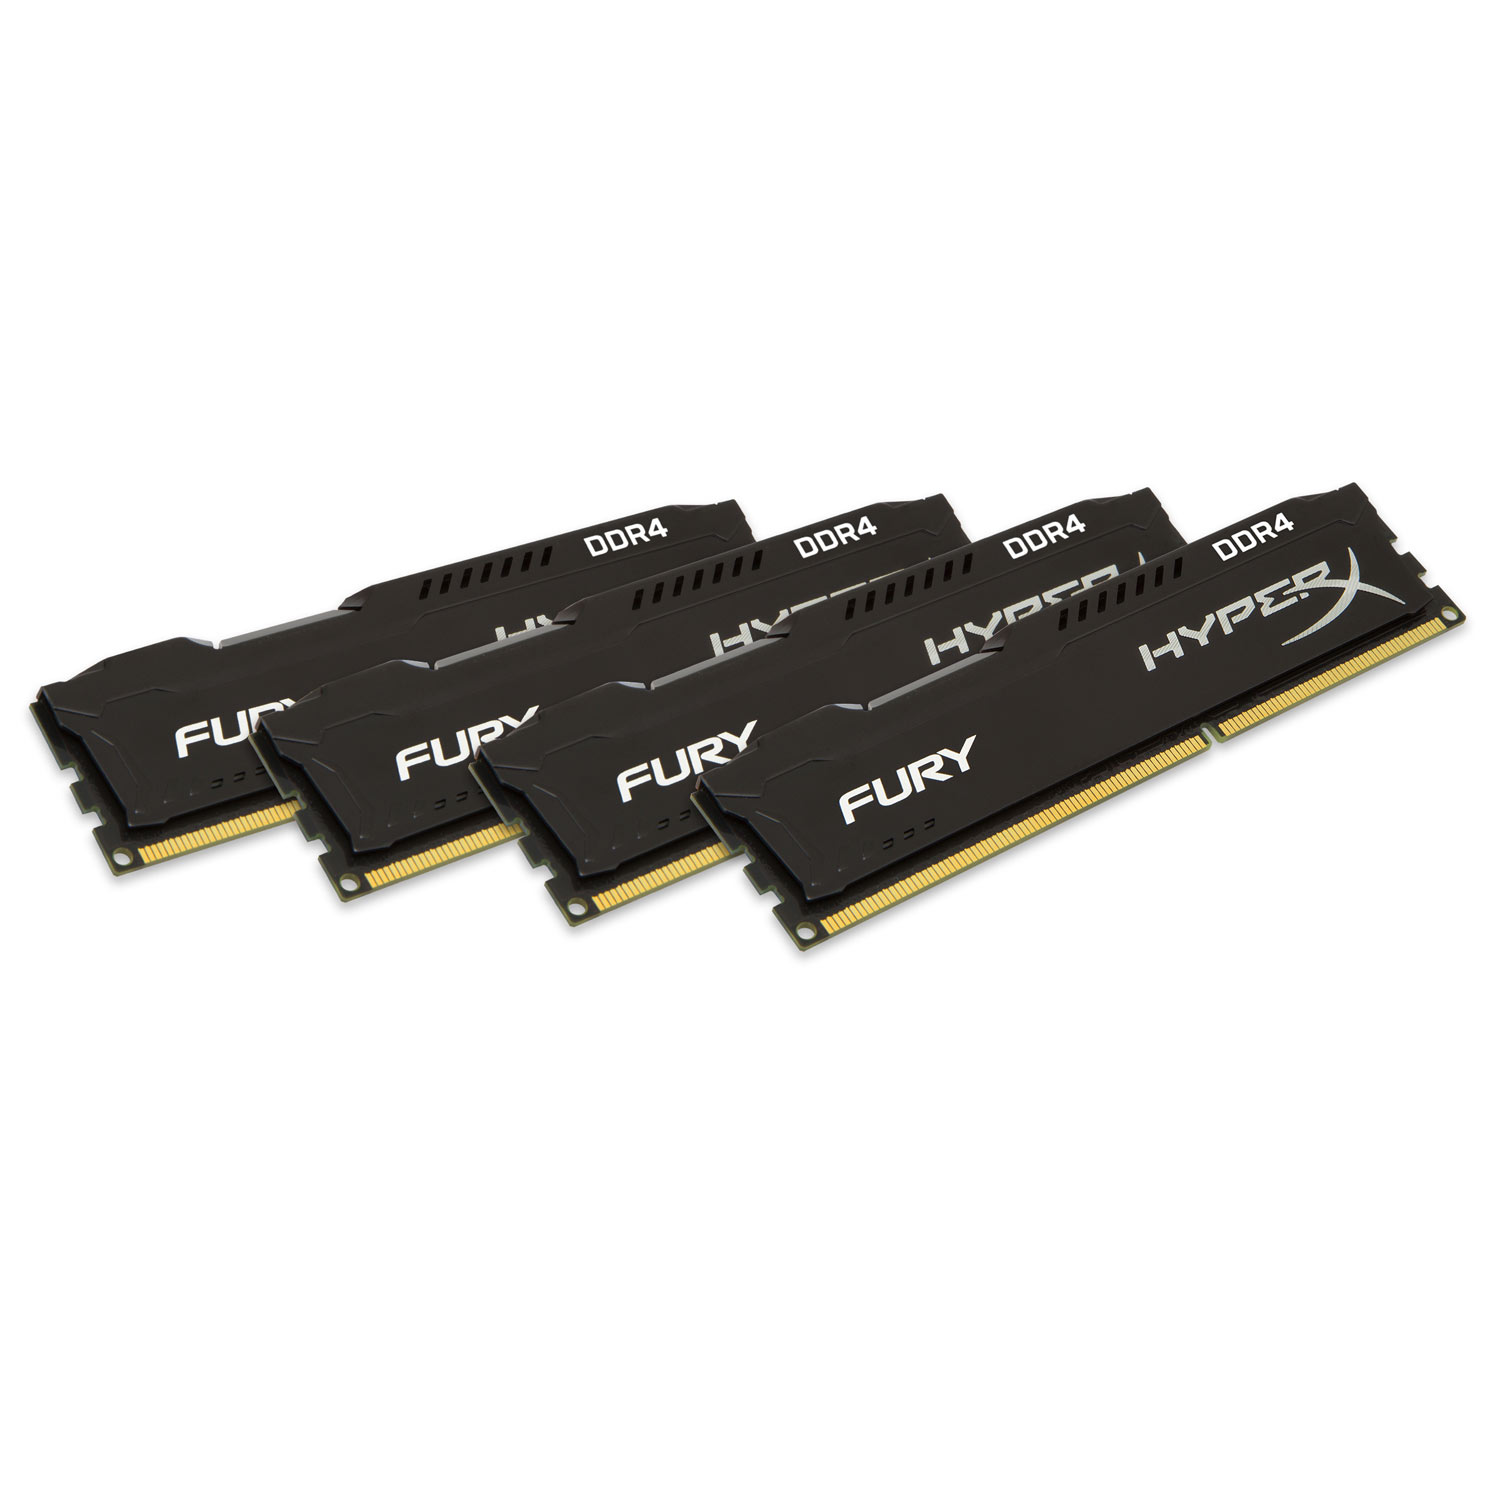 Mémoire PC HyperX Fury Noir 64 Go (4x 16 Go) DDR4 2400 MHz CL15 Kit Quad Channel 4 barrettes de RAM DDR4 PC4-19200 - HX424C15FBK4/64 (garantie 10 ans par Kingston)